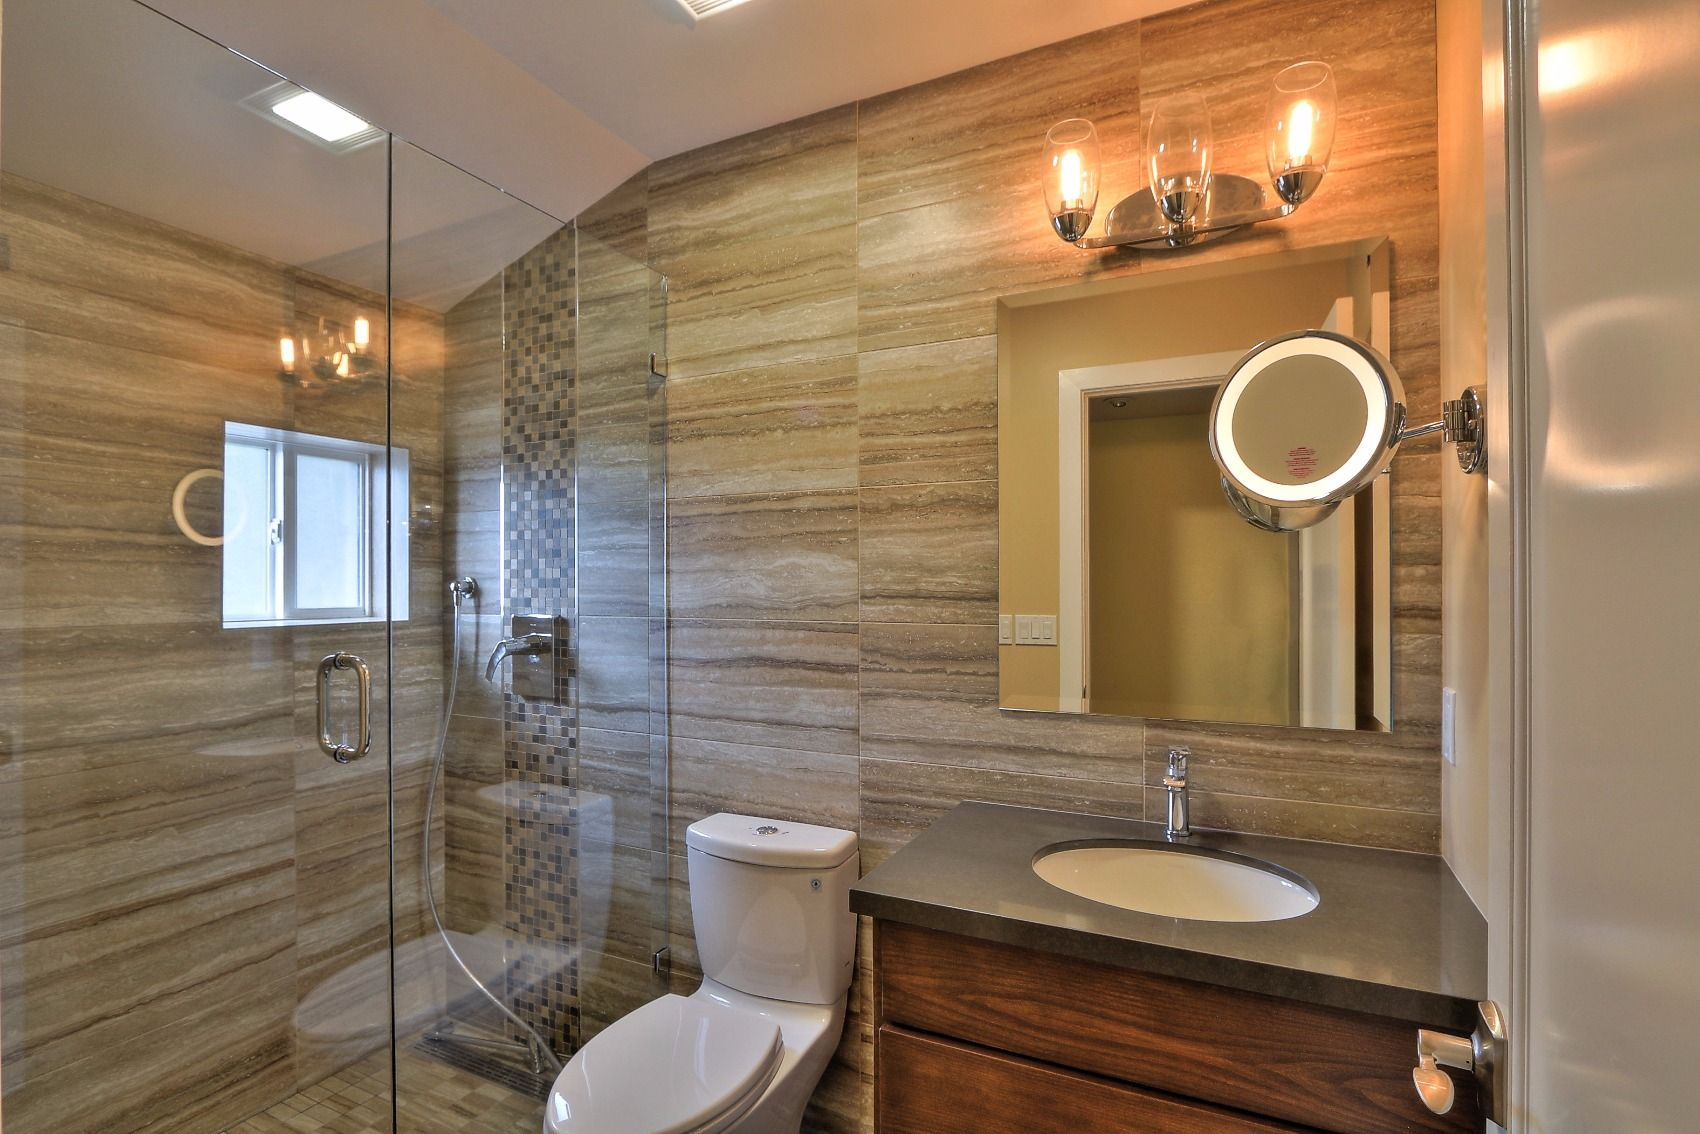 Acton Construction Hall Bathroom Remodel In San Jose, CA